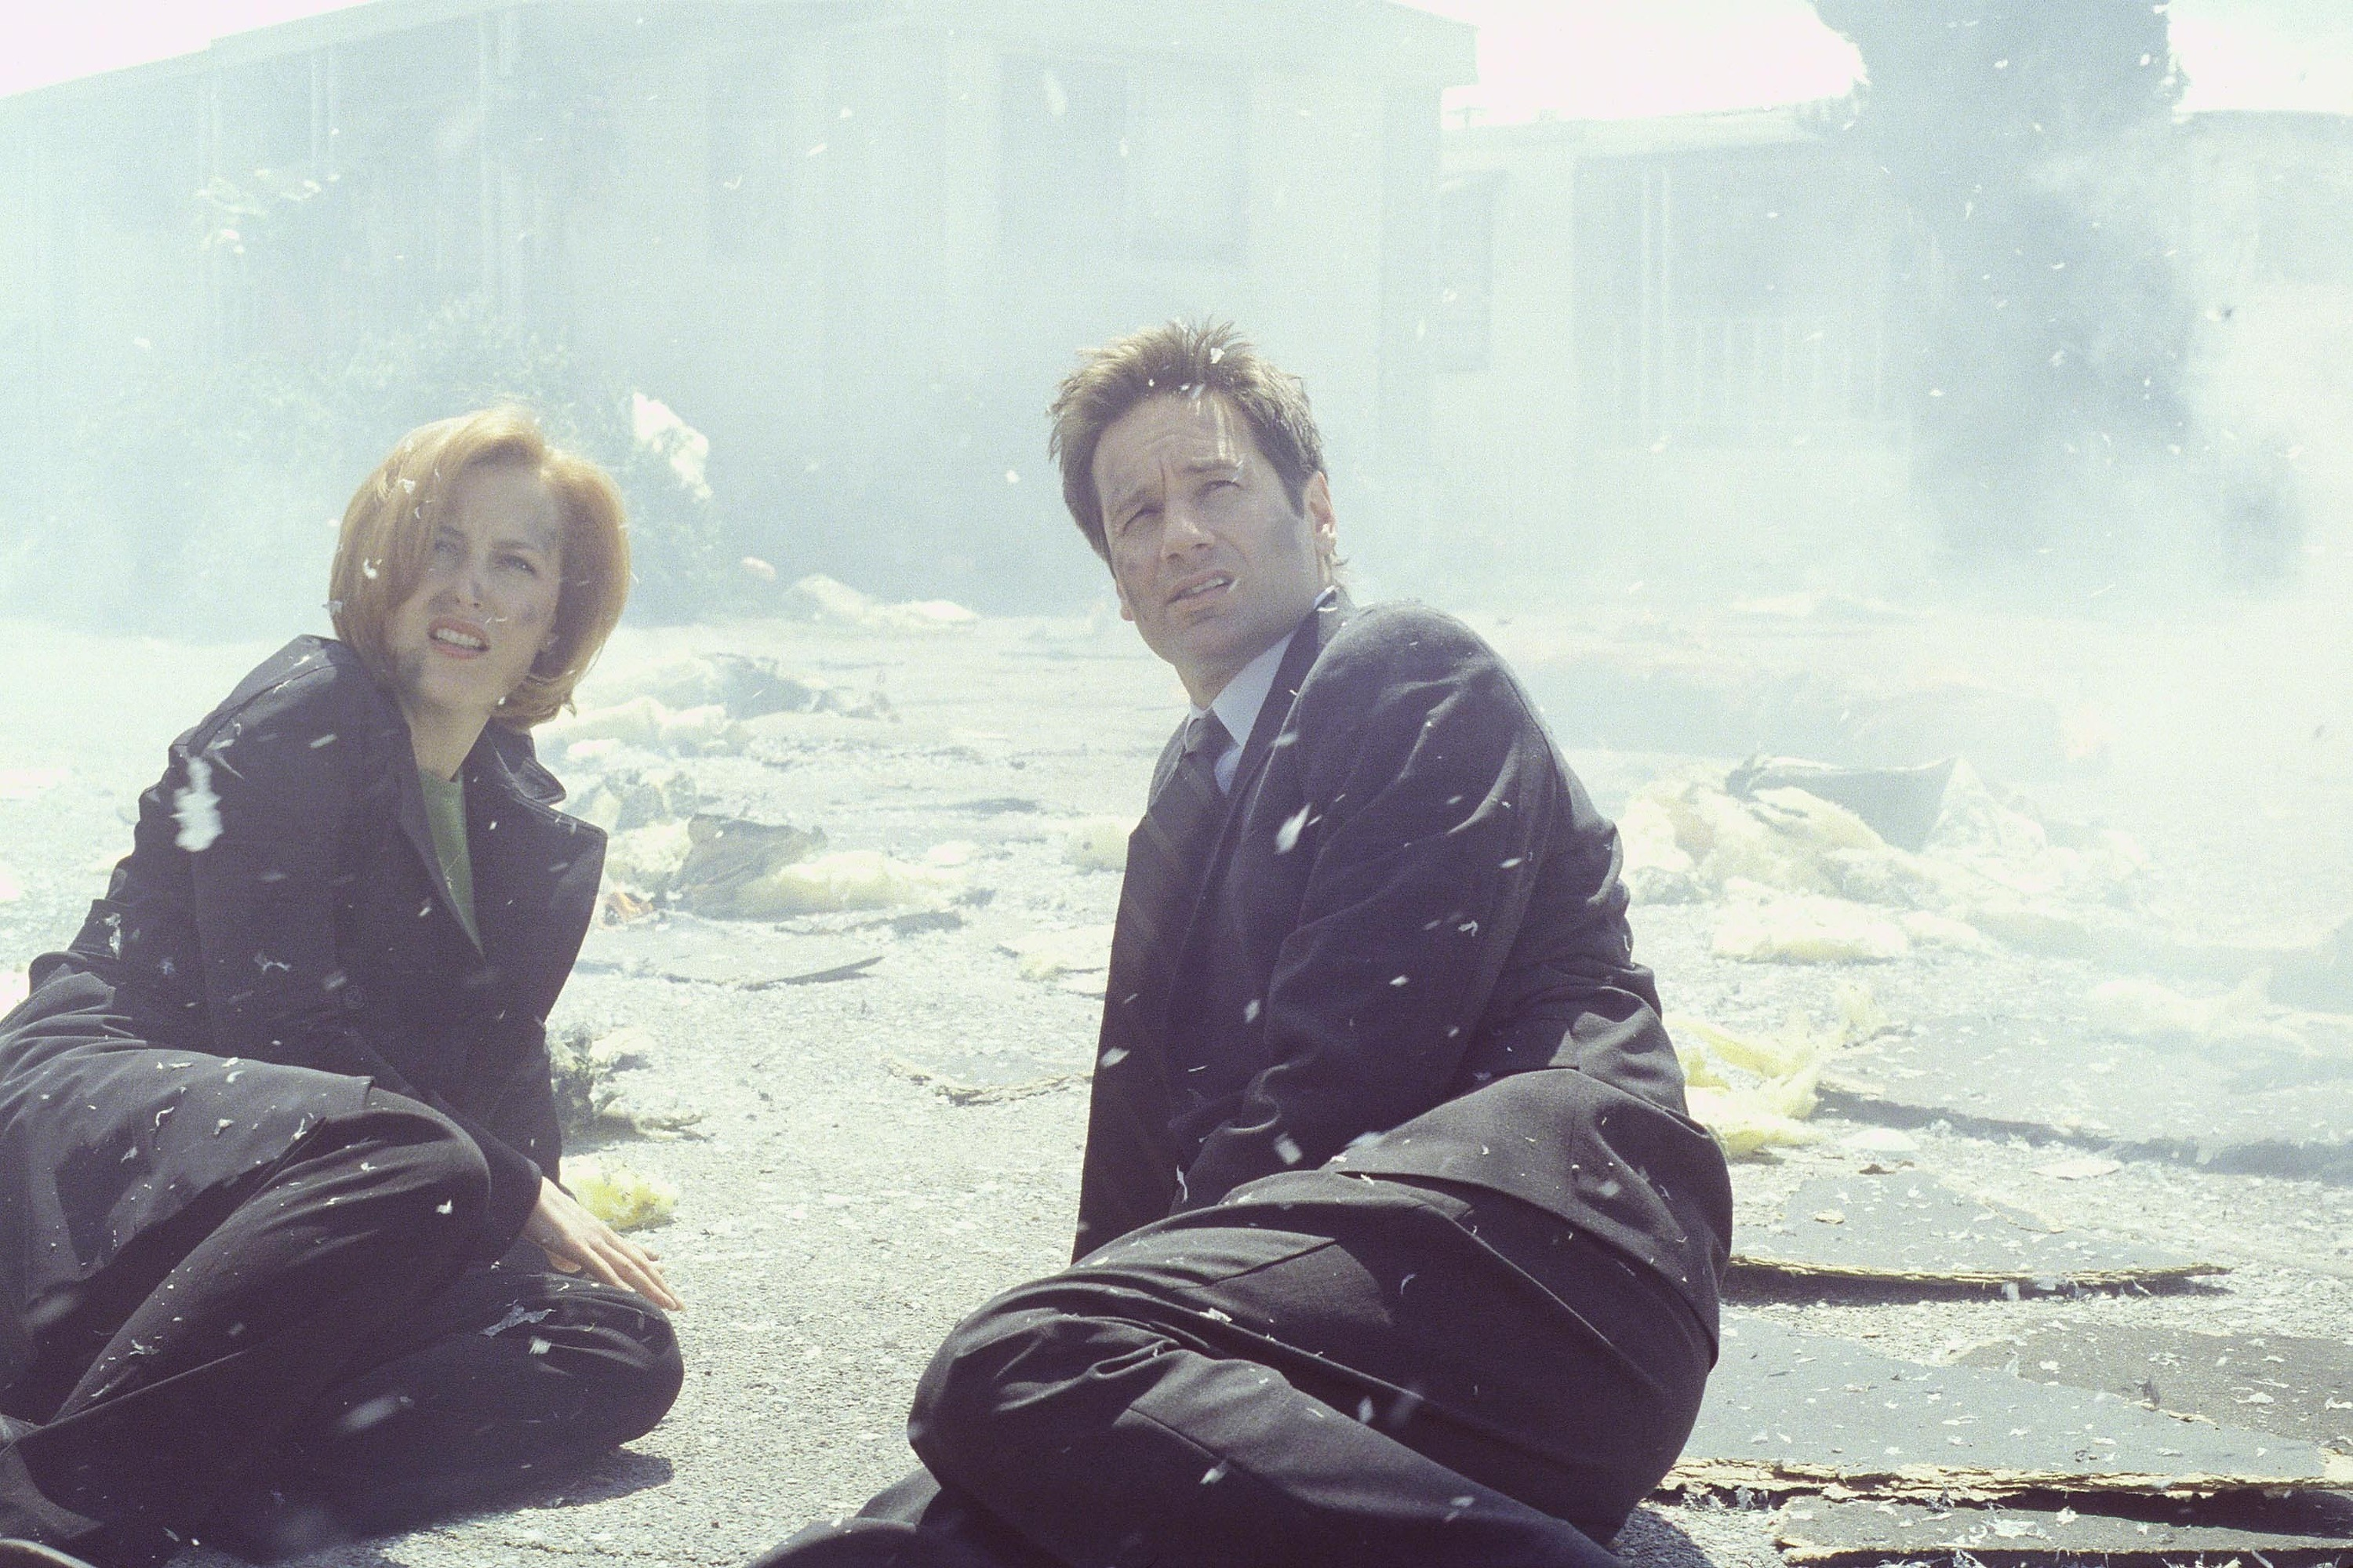 THE X-FILES - SEASON 7:  Agents Scully (Gillian Anderson, L) and Mulder (David Duchovny, R) witness the repercussions of an u